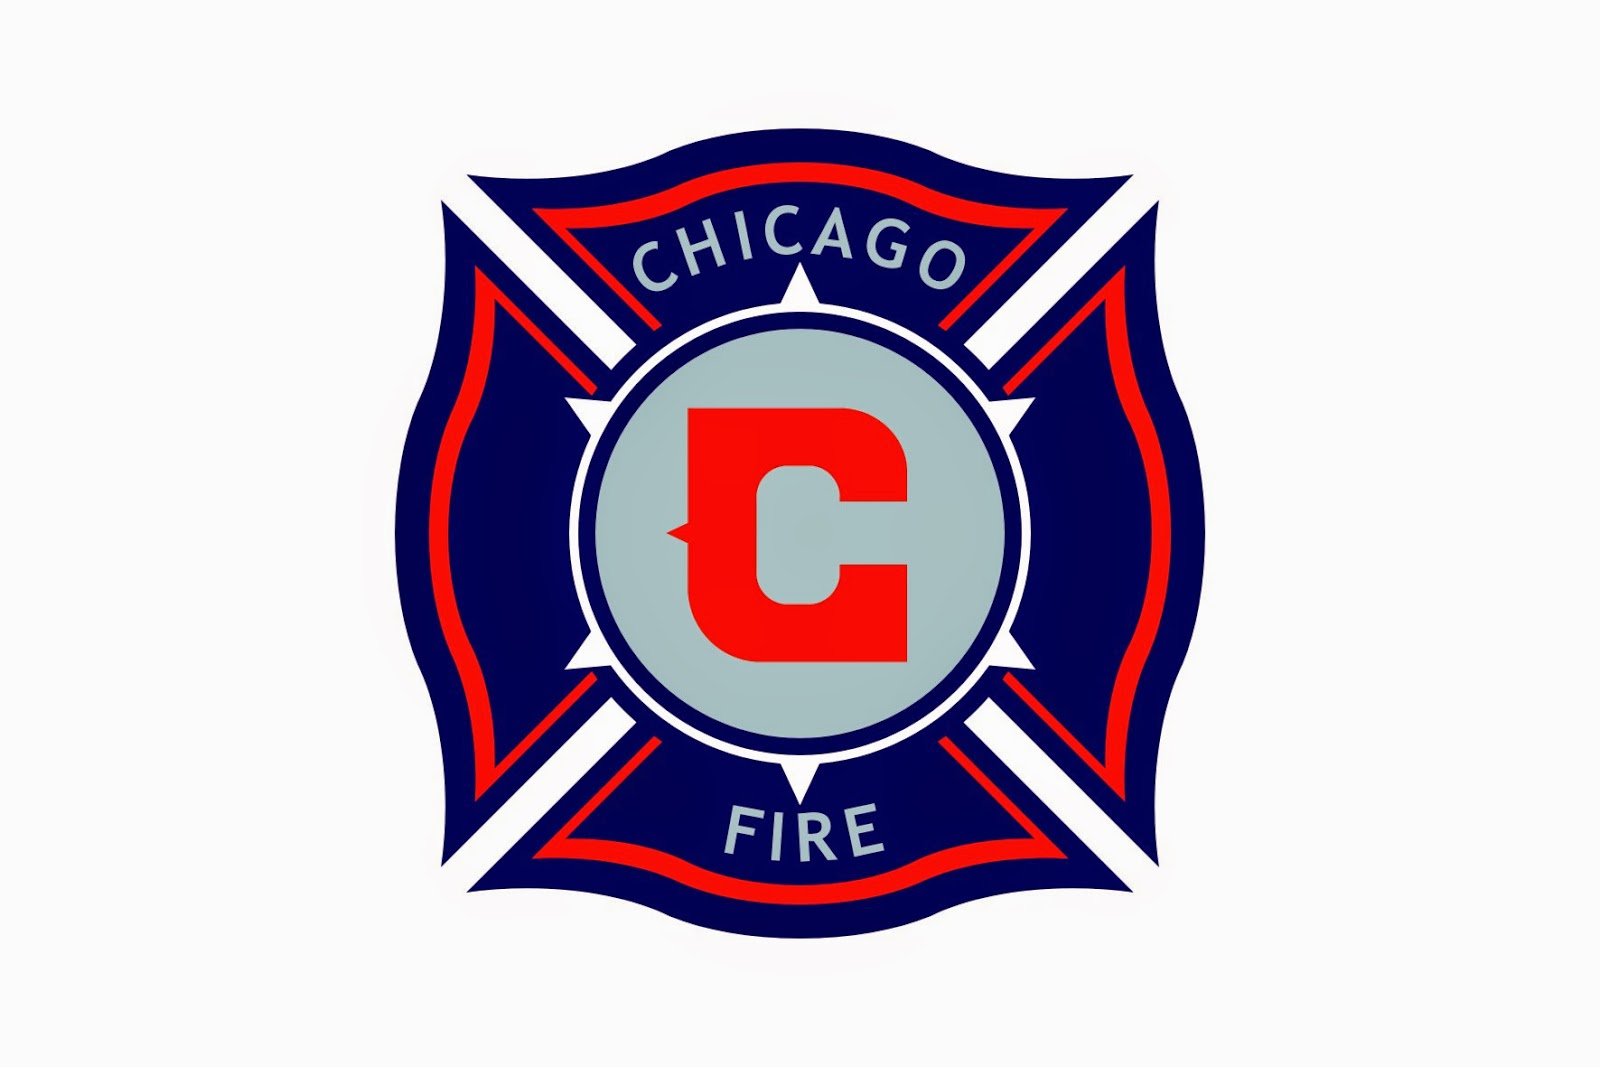 Chicago Fire Log...K Logo In Fire